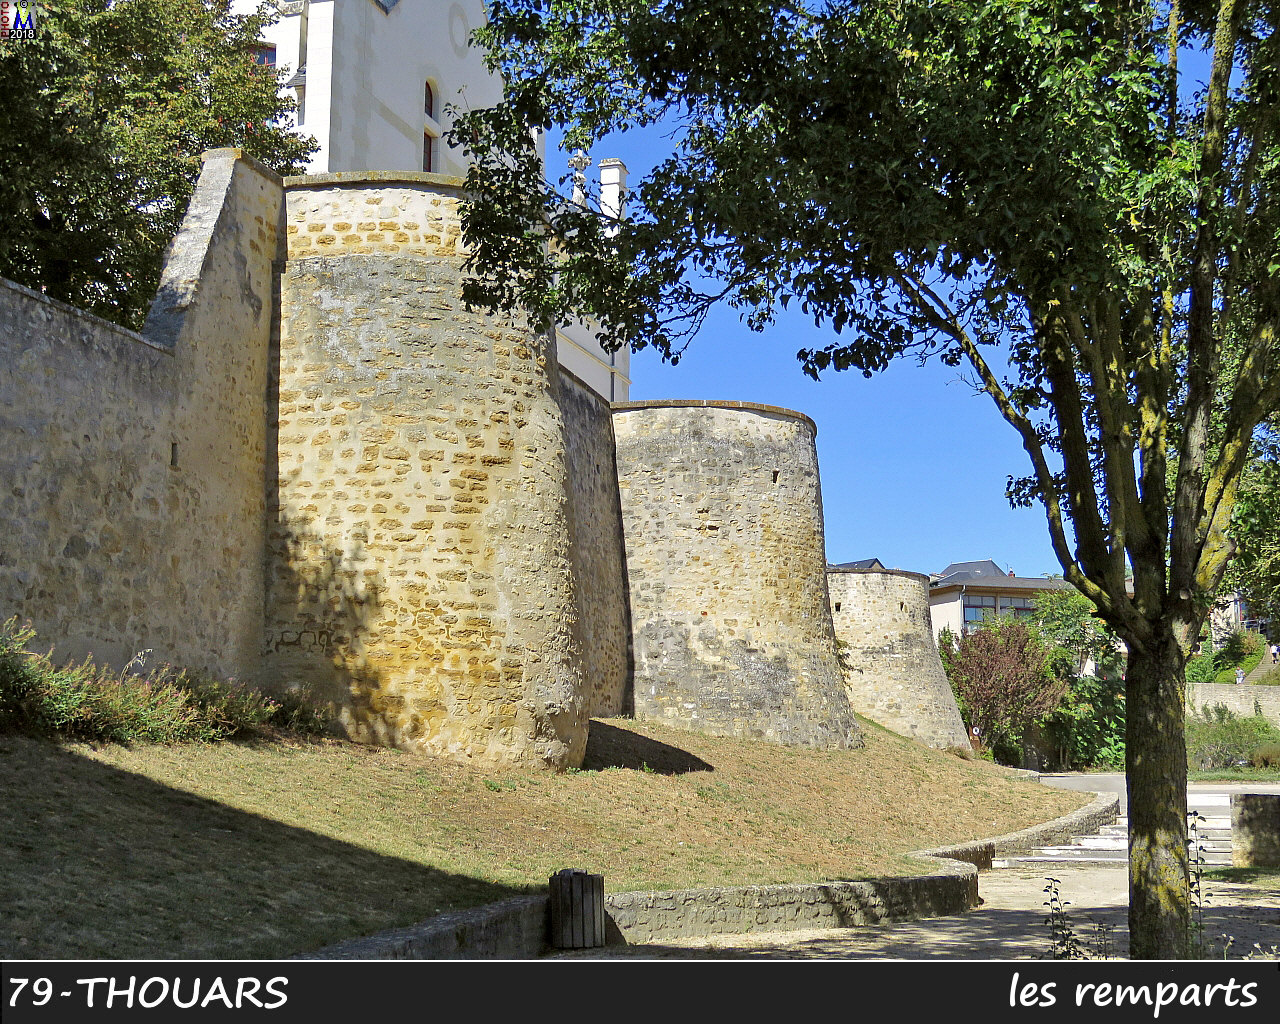 79THOUARS_remparts_1010.jpg